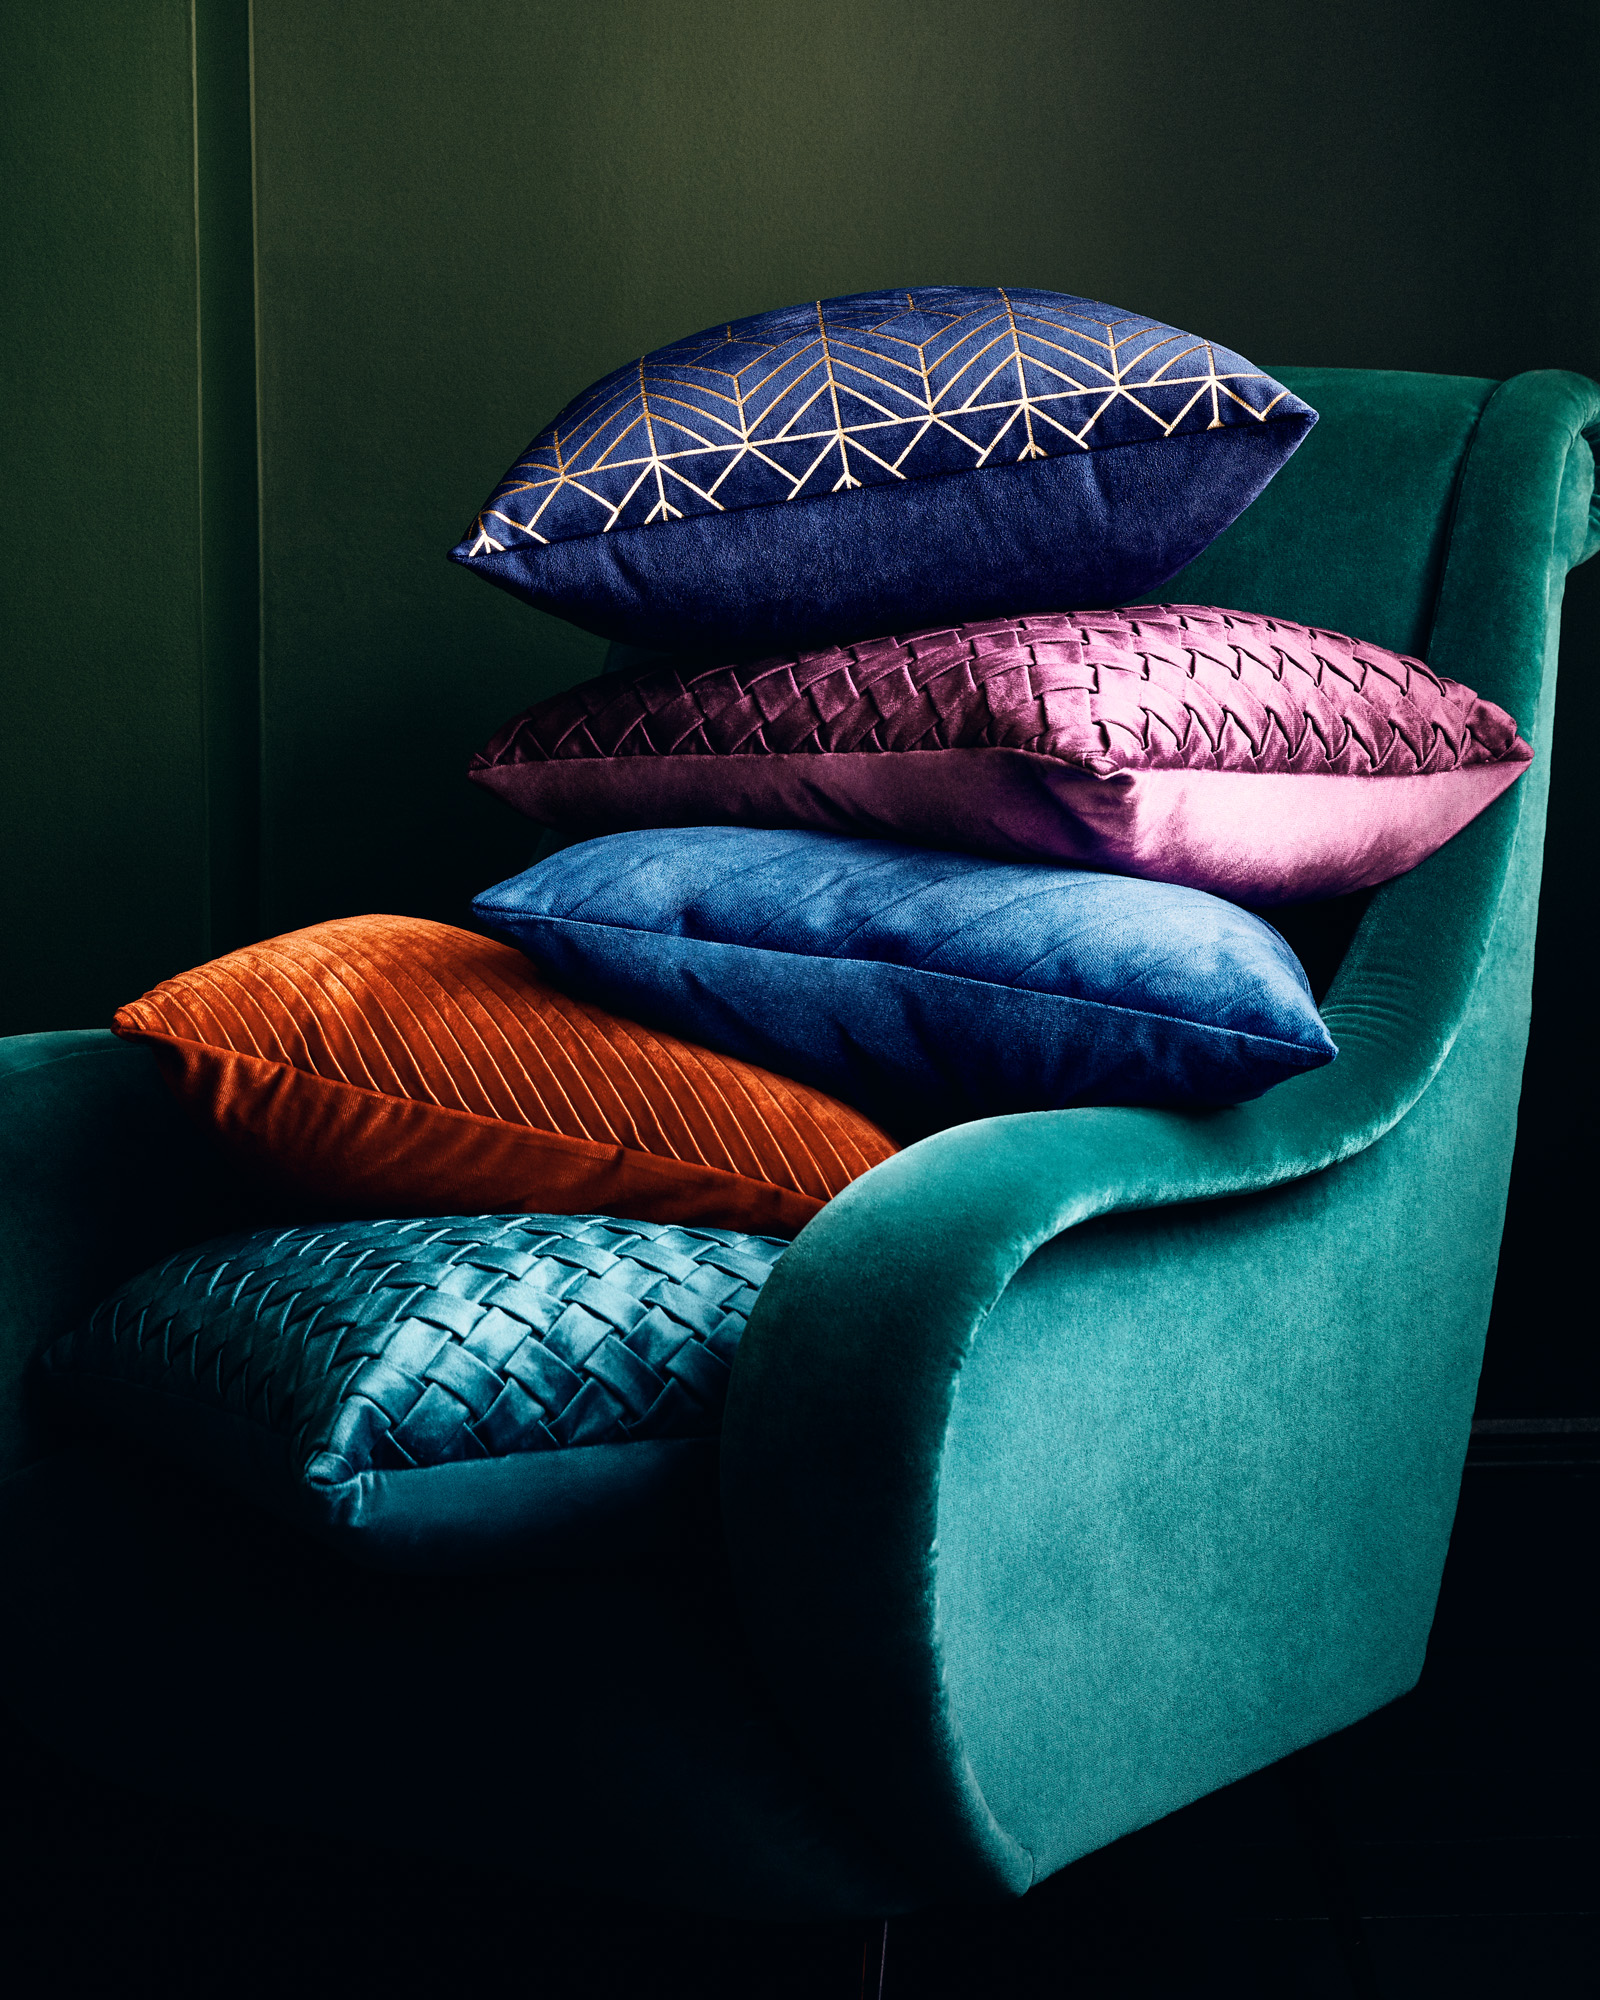 190820_PRIMARK_WK4_DARKFOREST_CUSHIONS_WINDOW_0034_MASTER_2